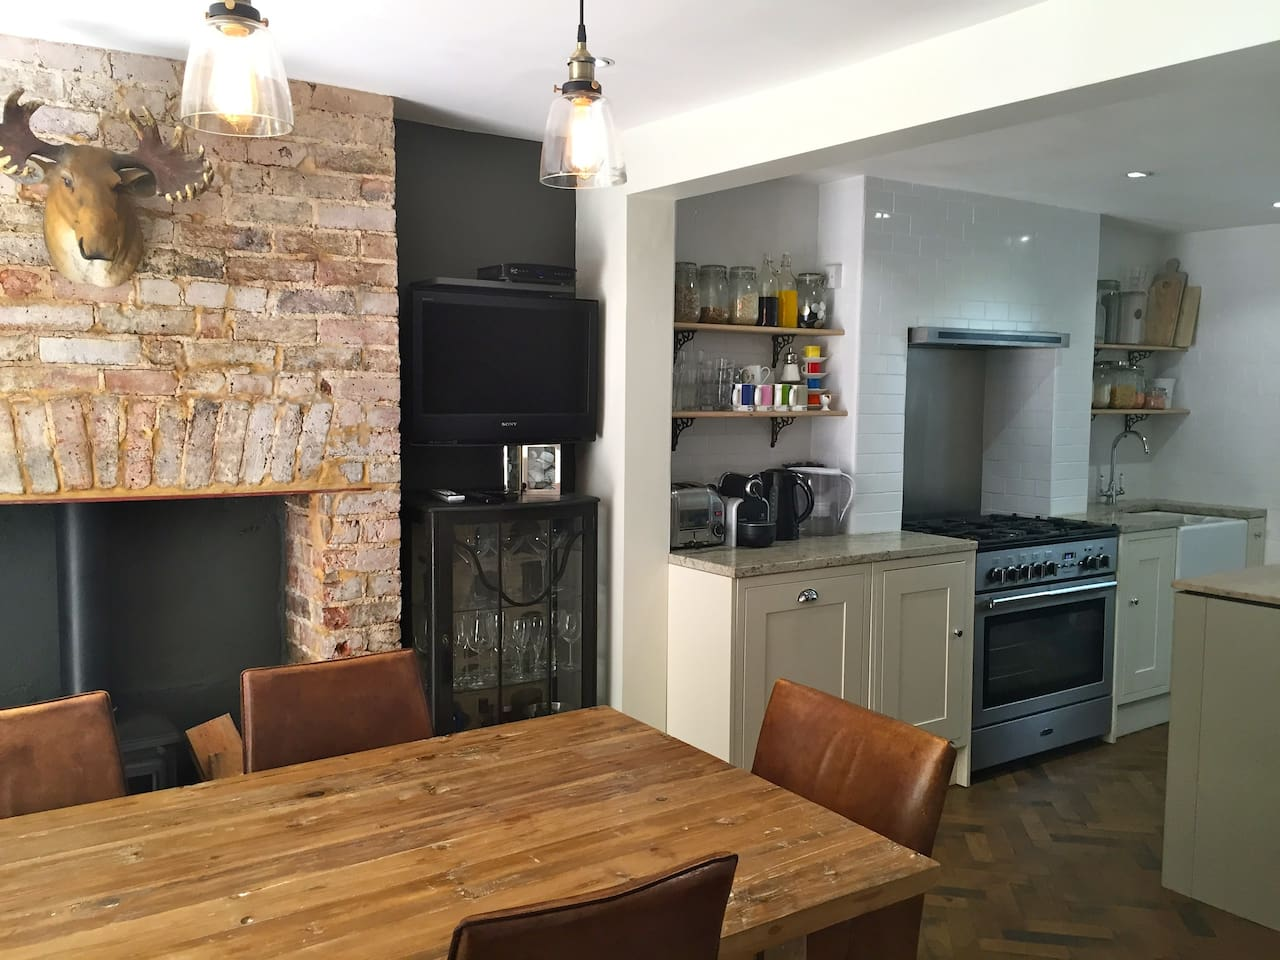 Lovely open-plan kitchen diner with double doors onto the garden